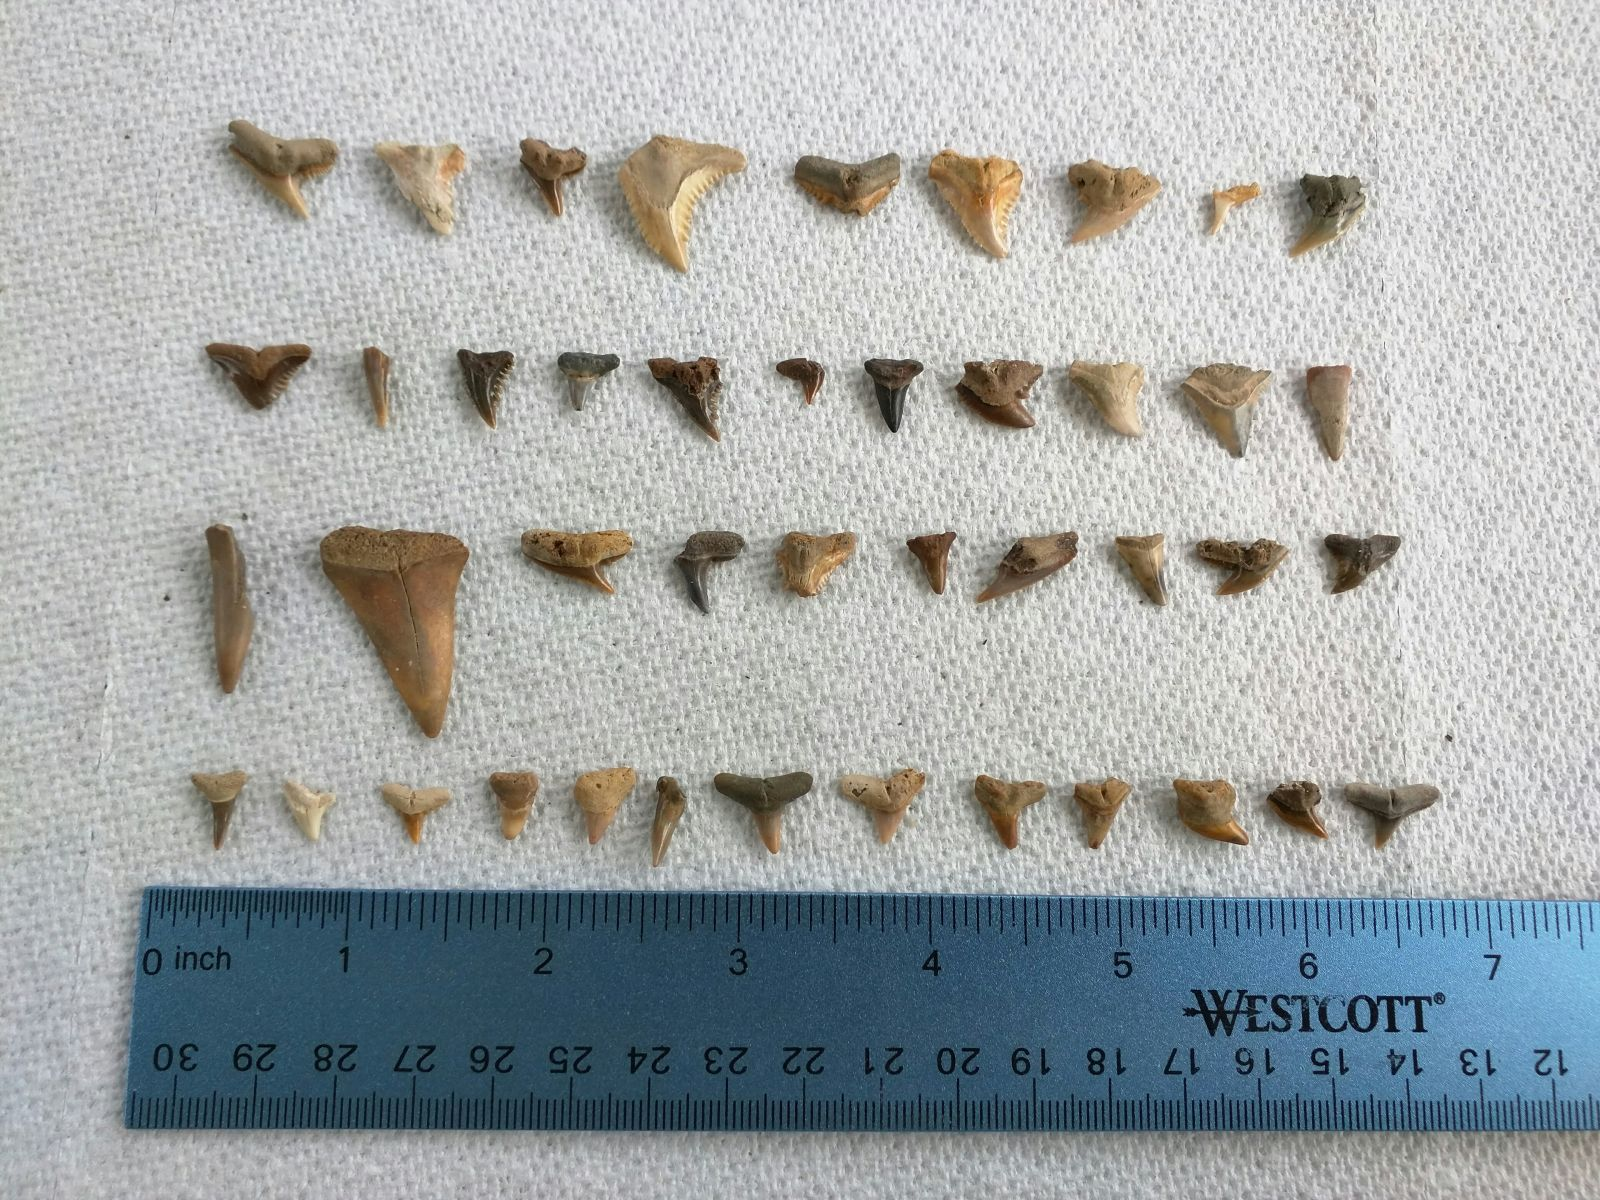 Mixed Shark Teeth